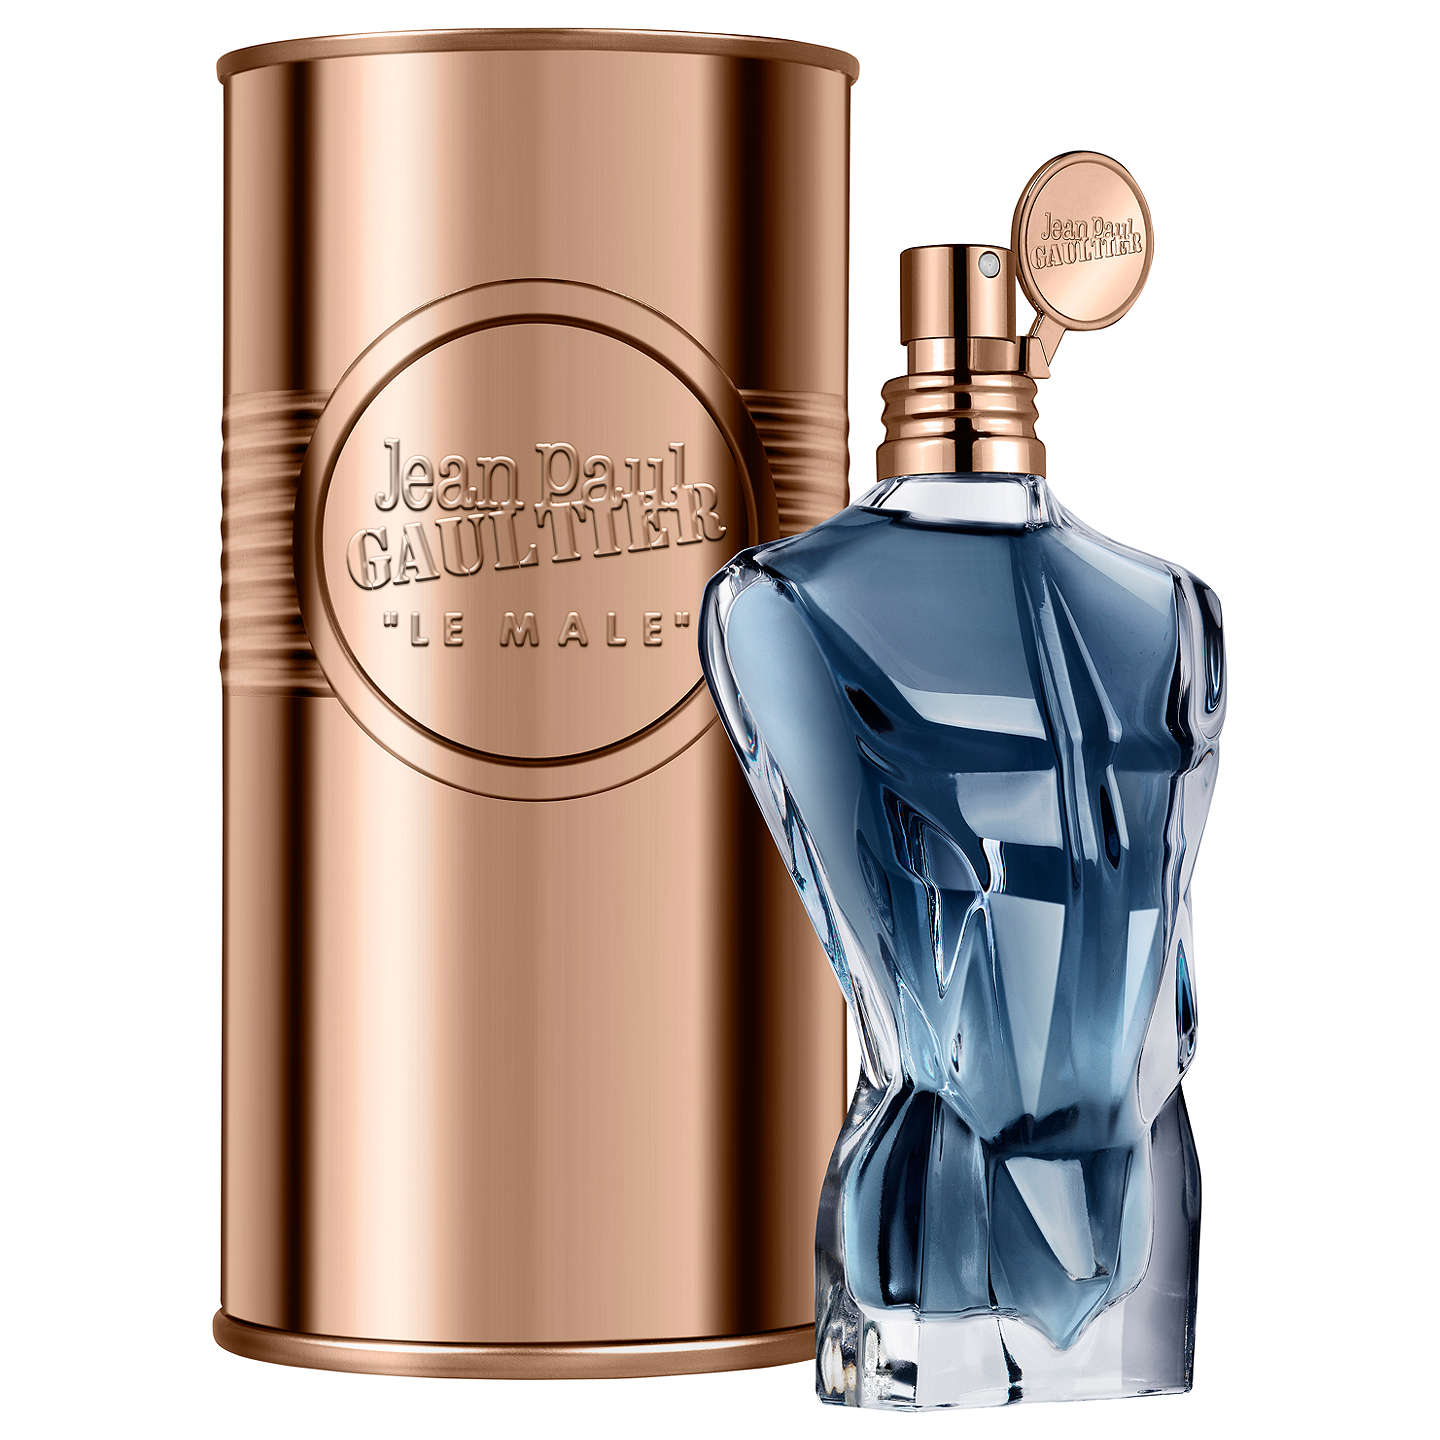 BuyJean Paul Gaultier Le Male Essence de Parfum, 75ml Online at johnlewis.com